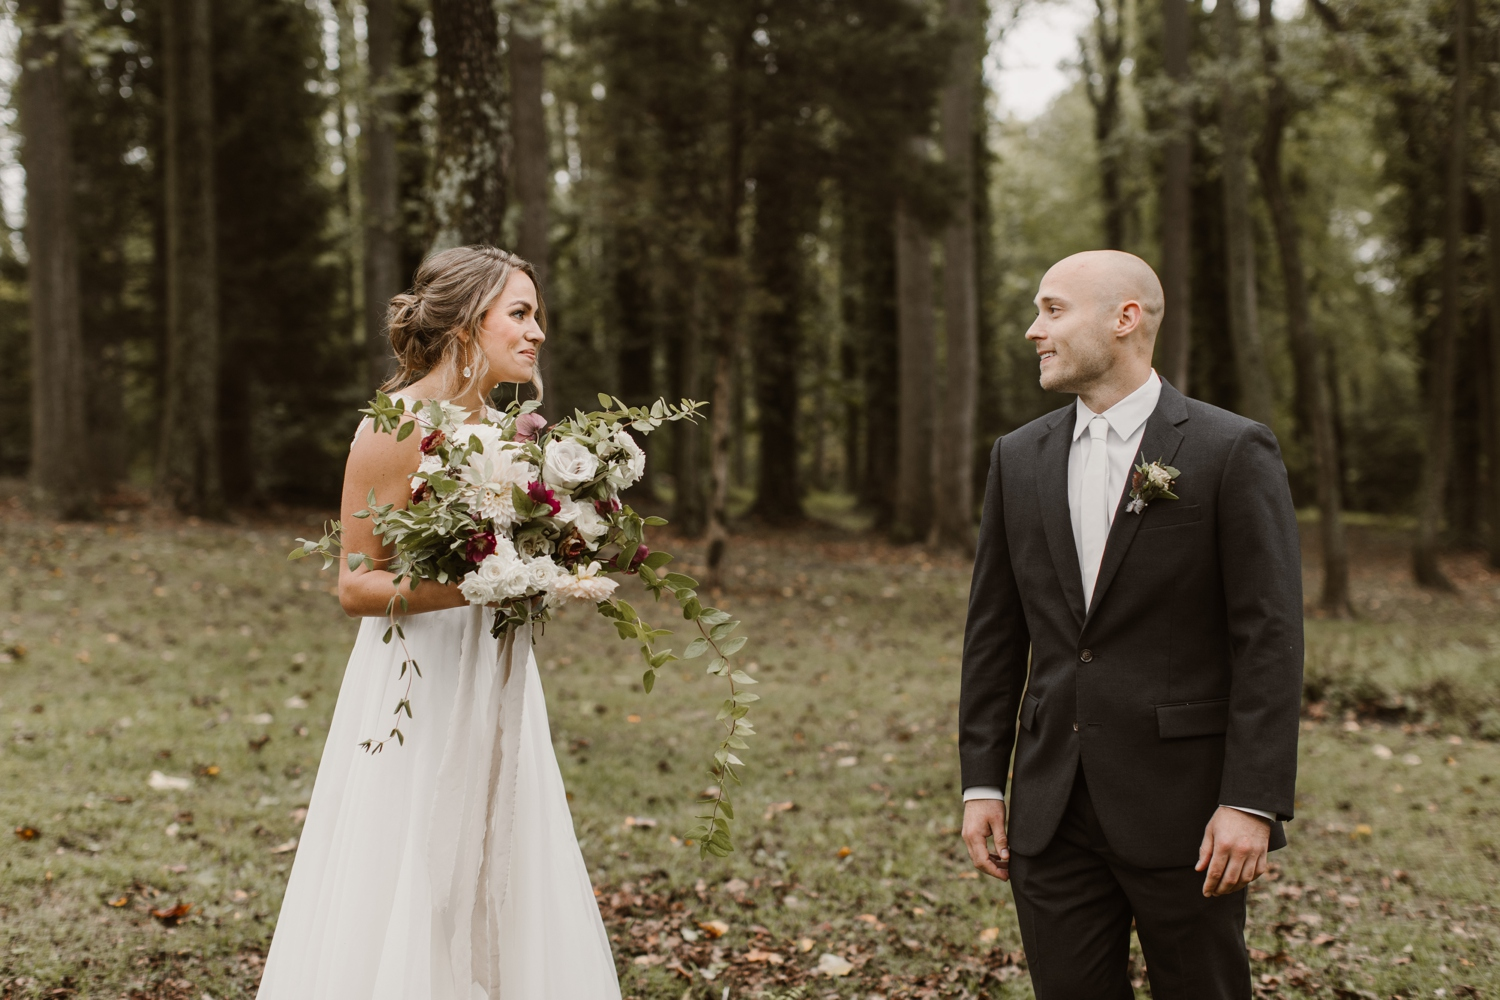 Baltimore wedding photographer outdoor Maryland wedding ceremony   forest earthy Annapolis wedding   outdoors bride and groom first look